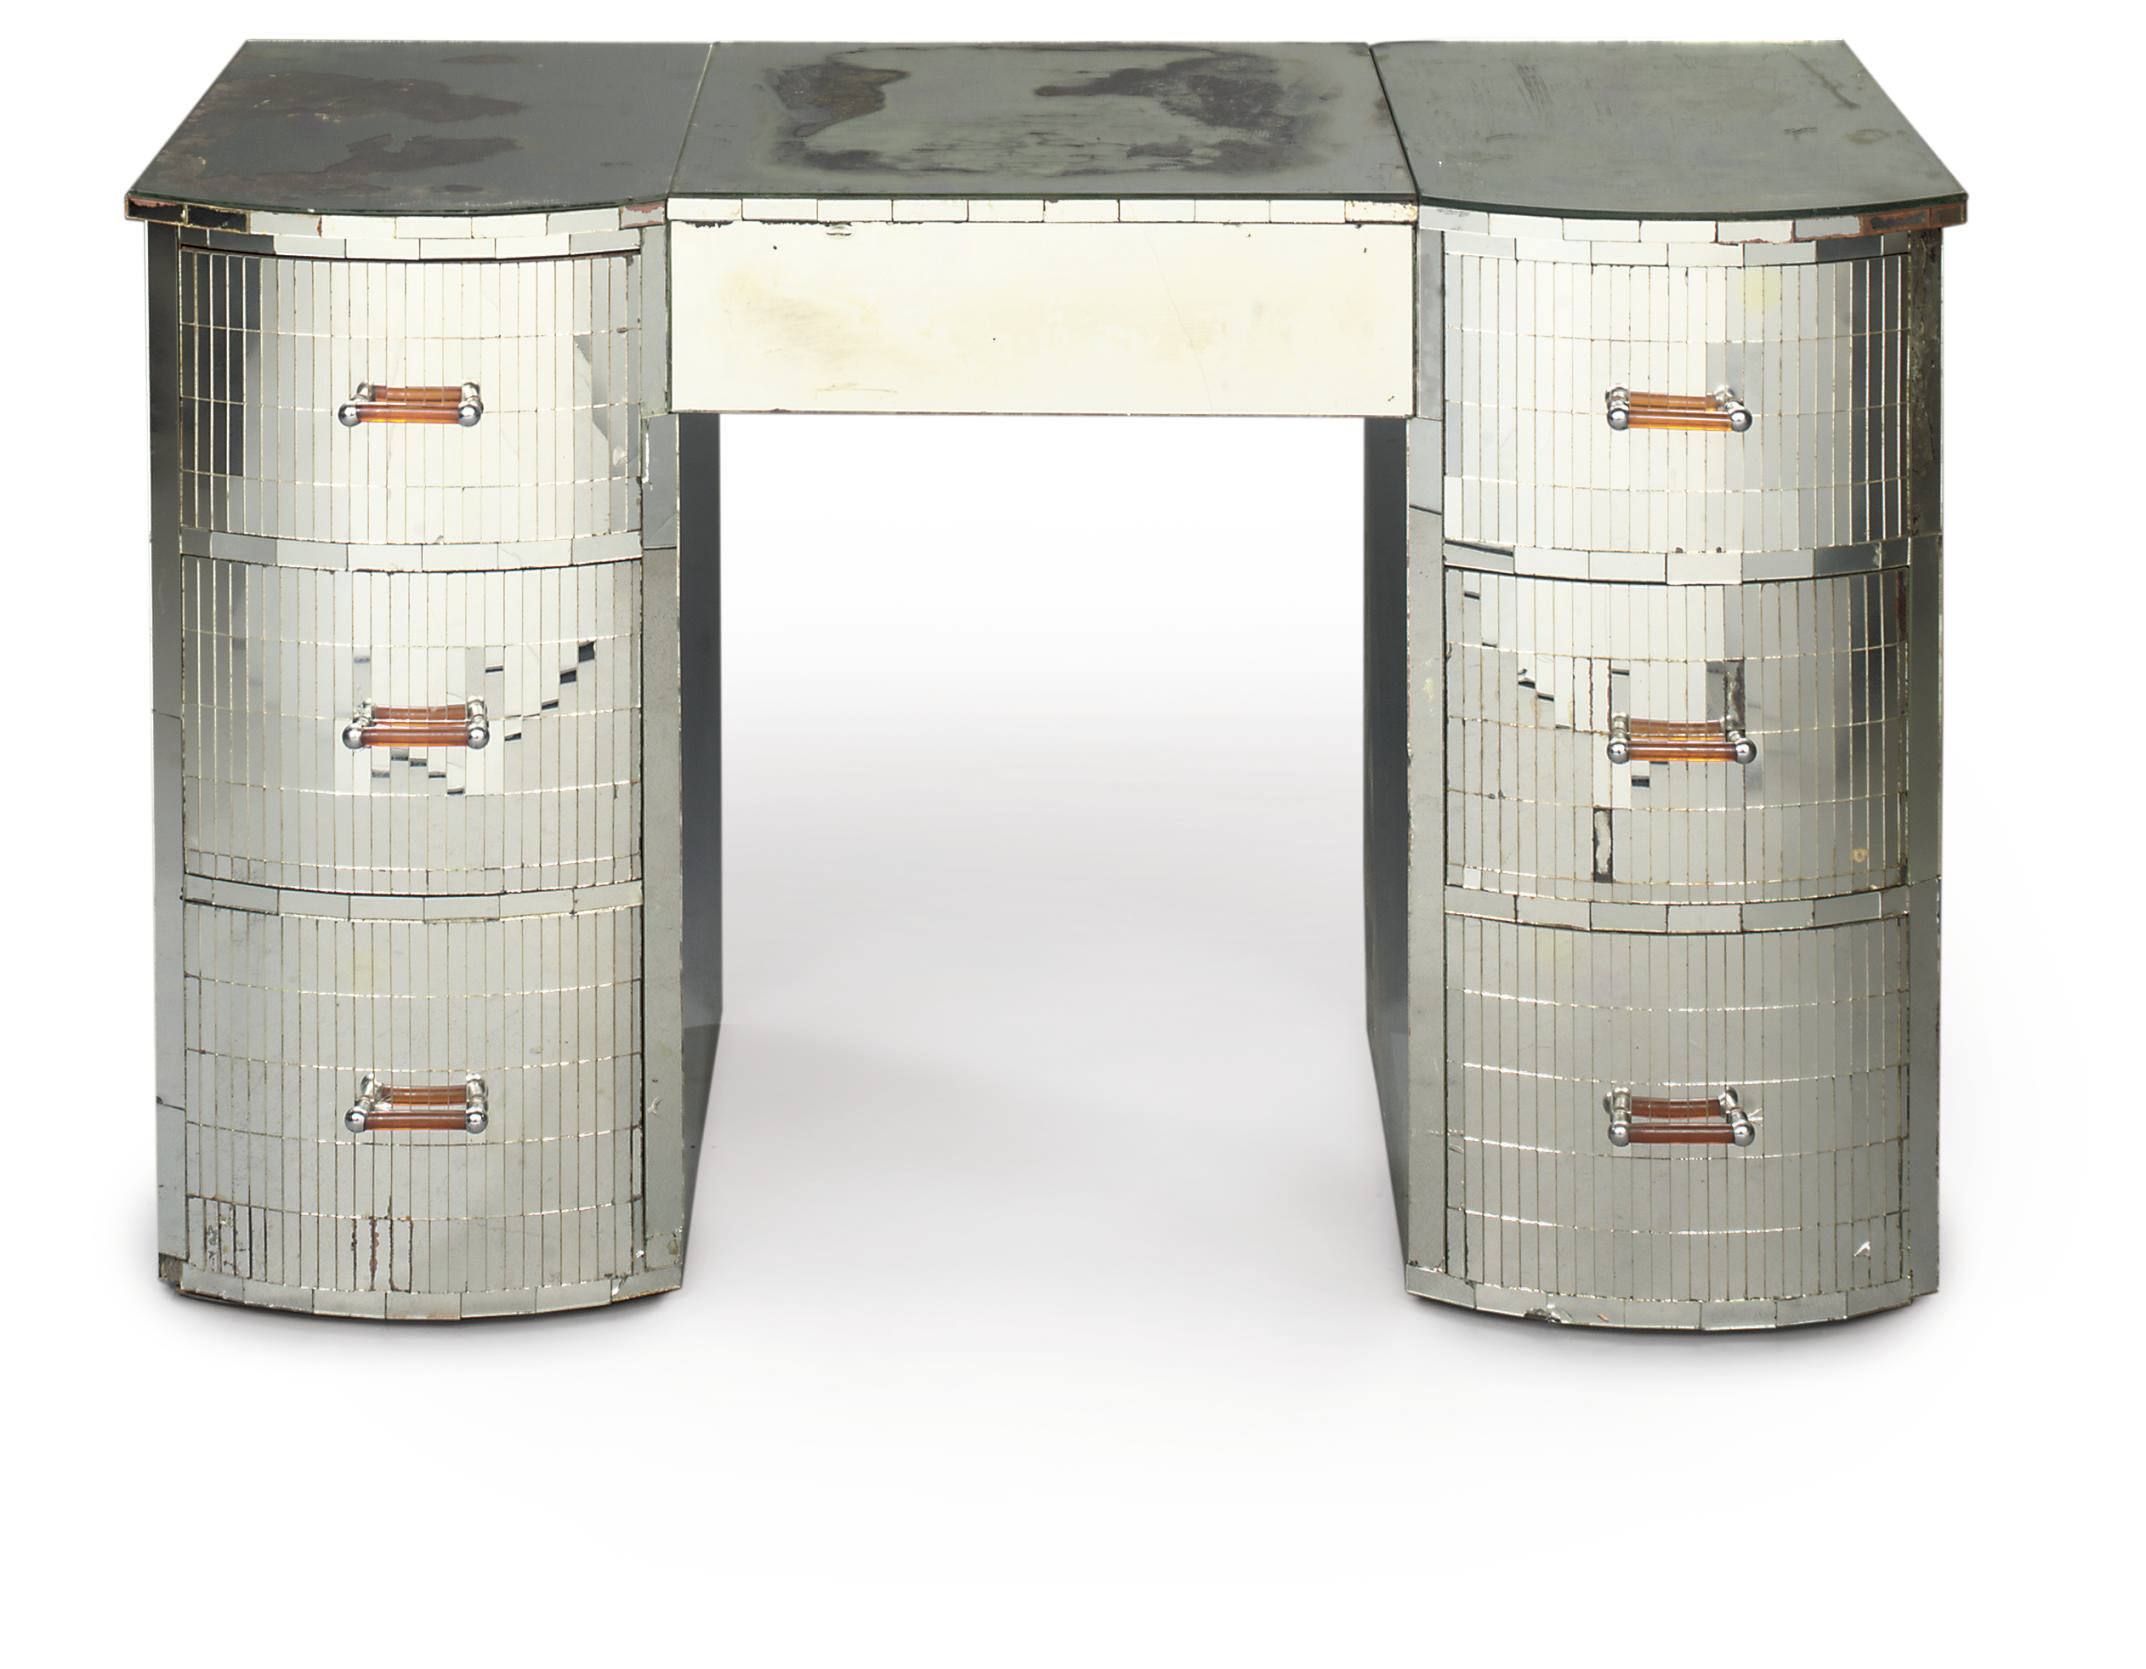 A FRENCH ART DECO MIRRORED KNE